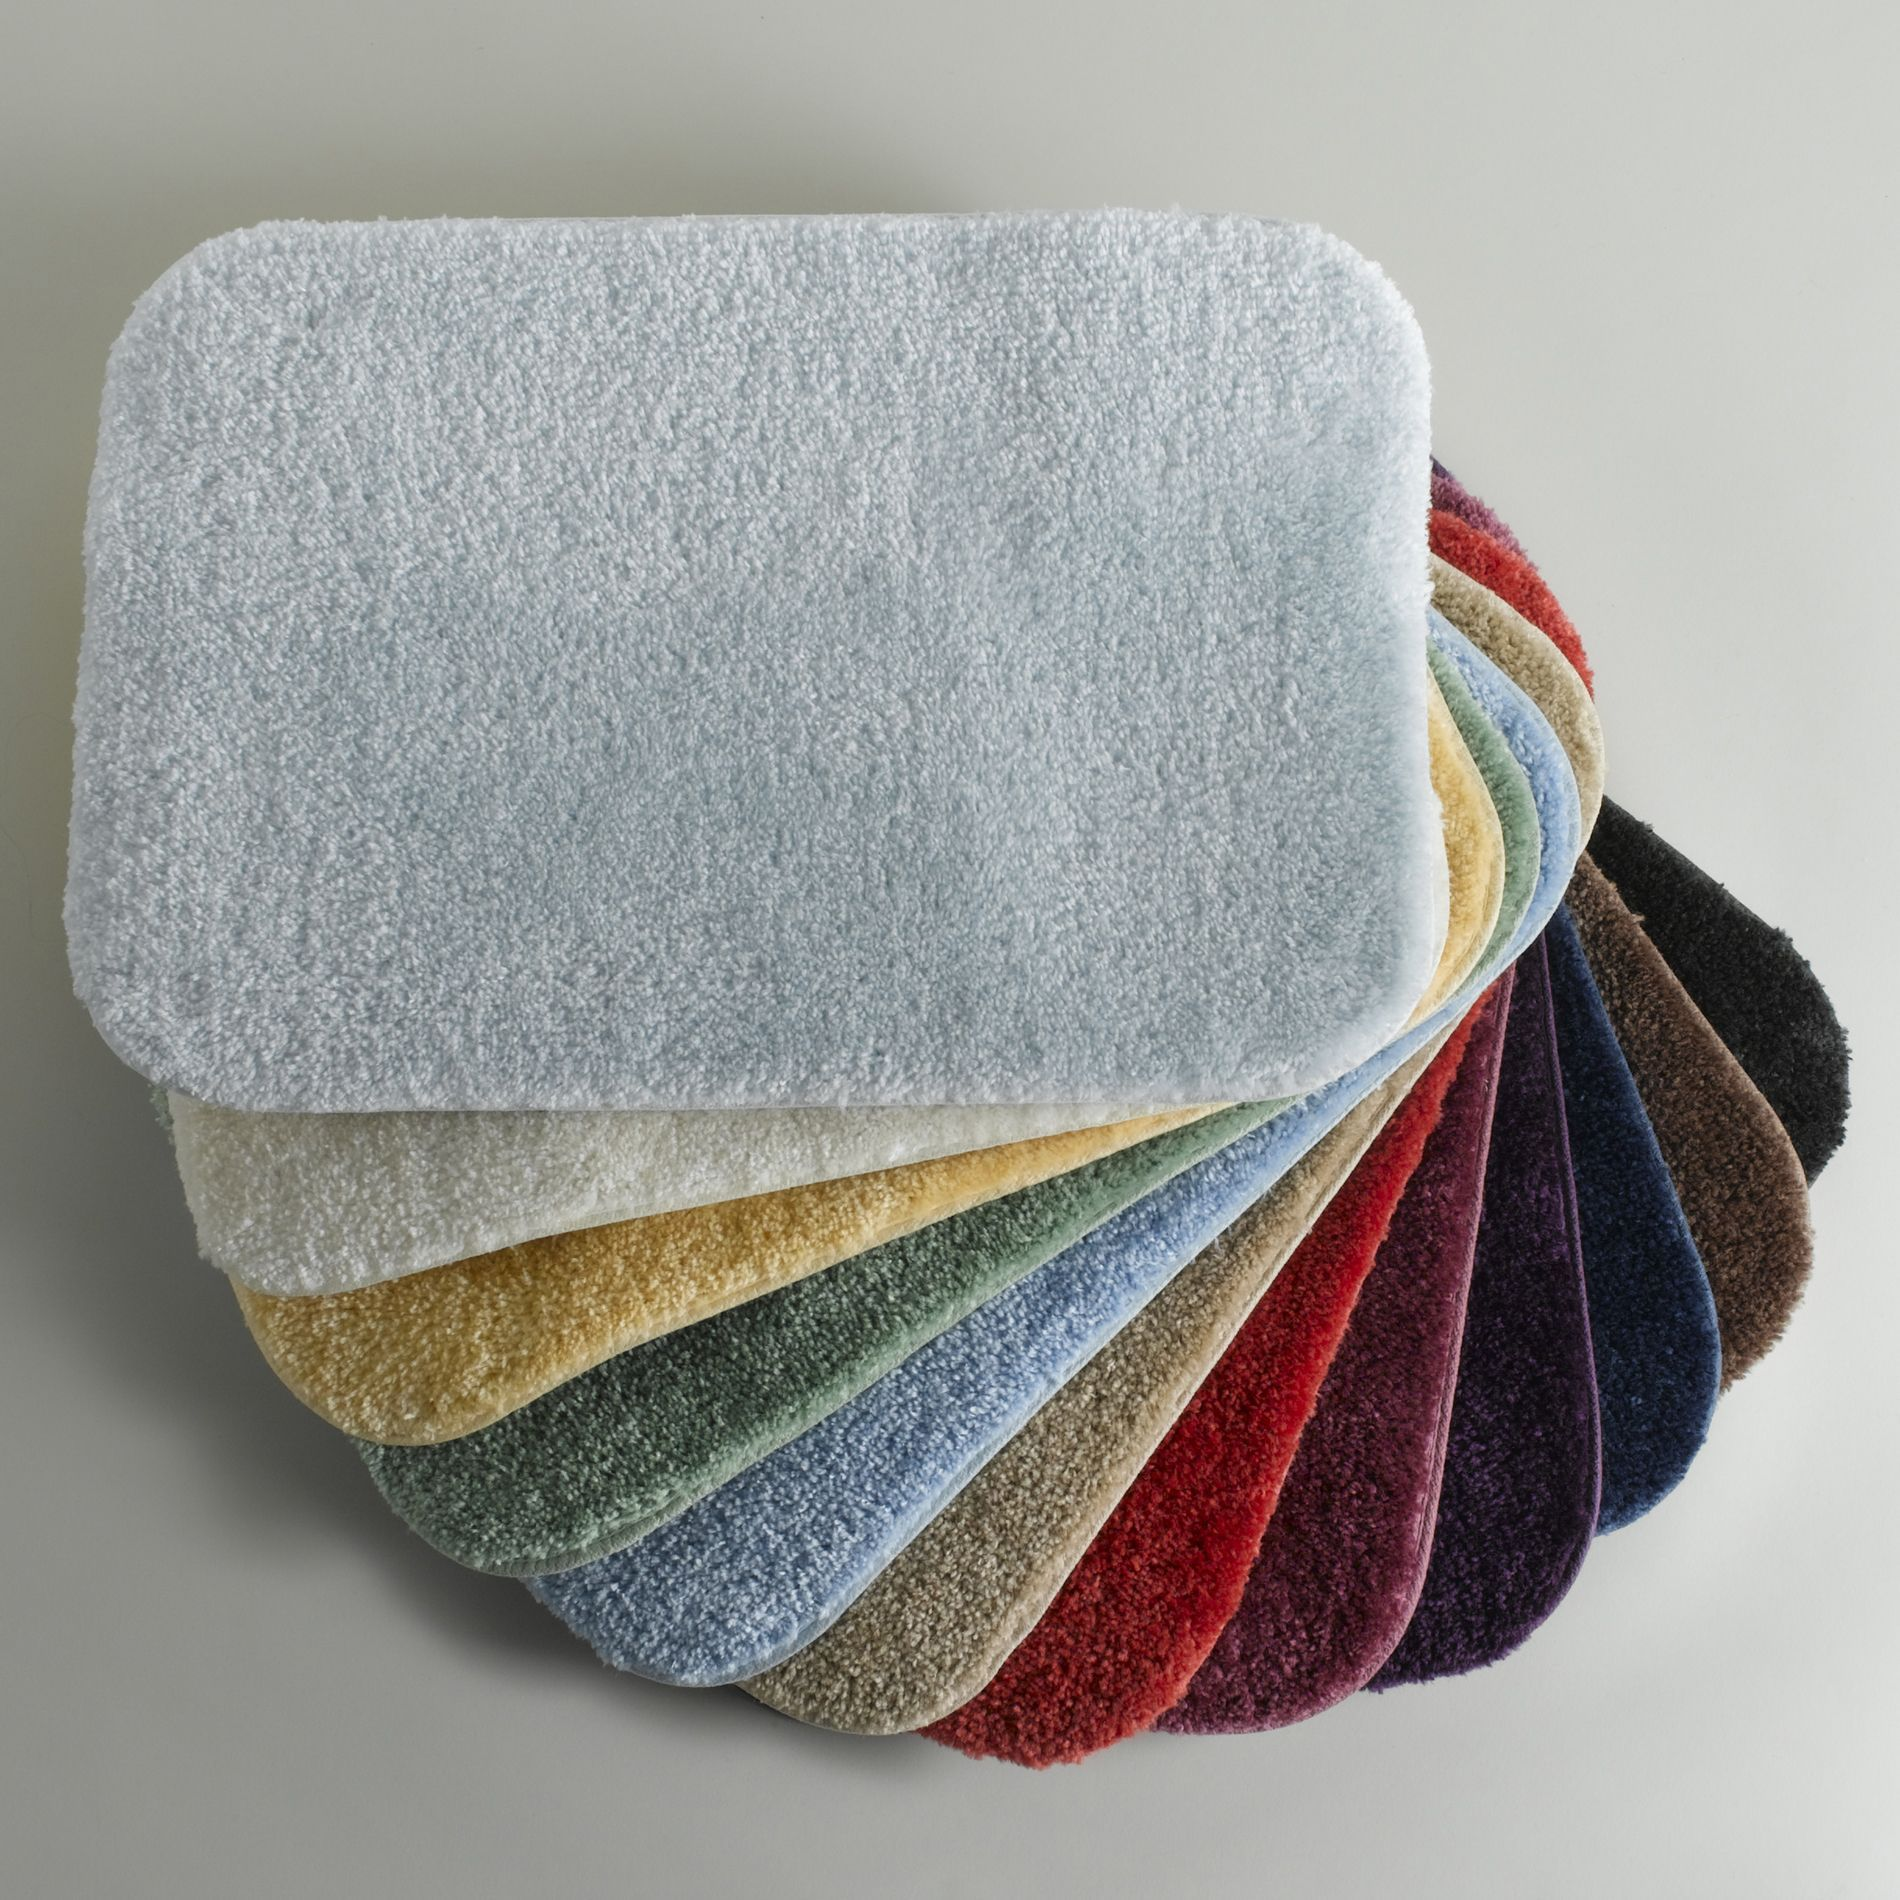 Bath Rugs With Rubber Backing Small To Medium Wish List - Large grey bath mat for bathroom decorating ideas